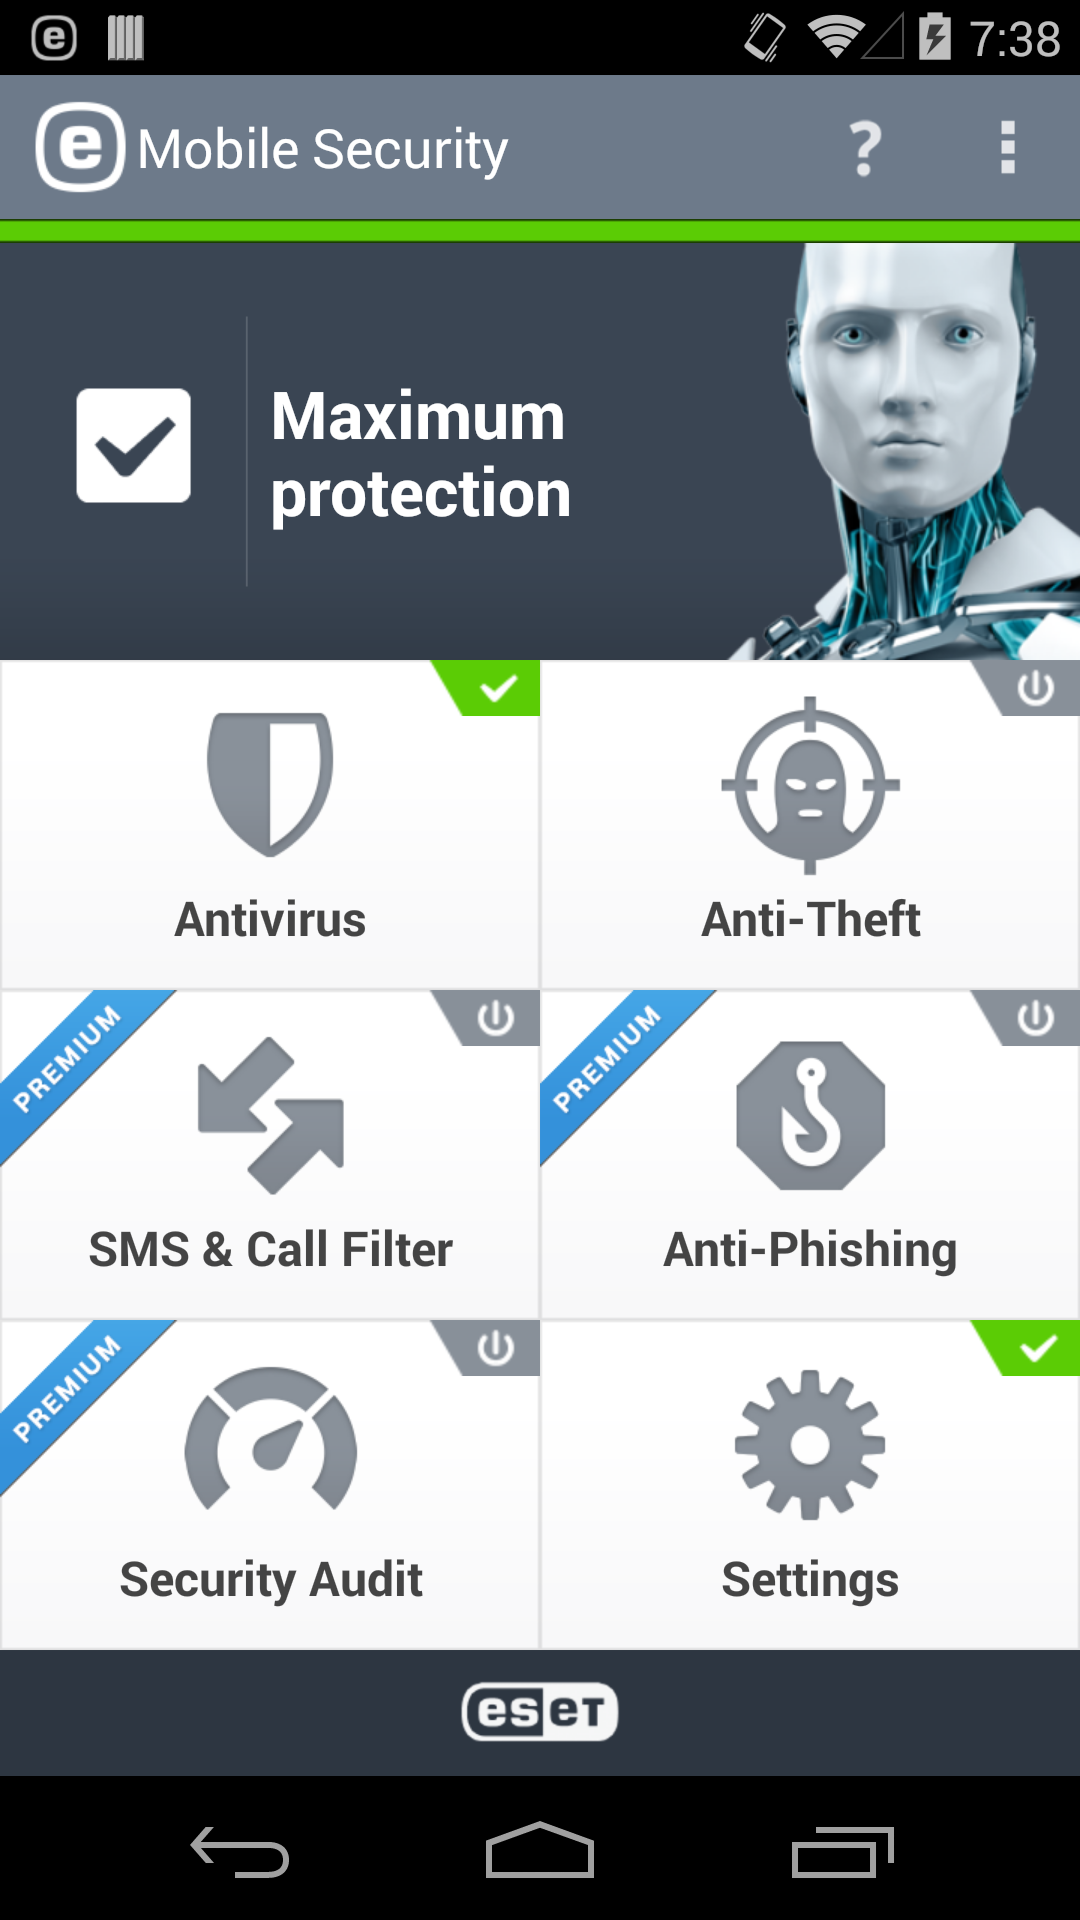 32 Protection Apps for Android Put to the Test | AV-TEST